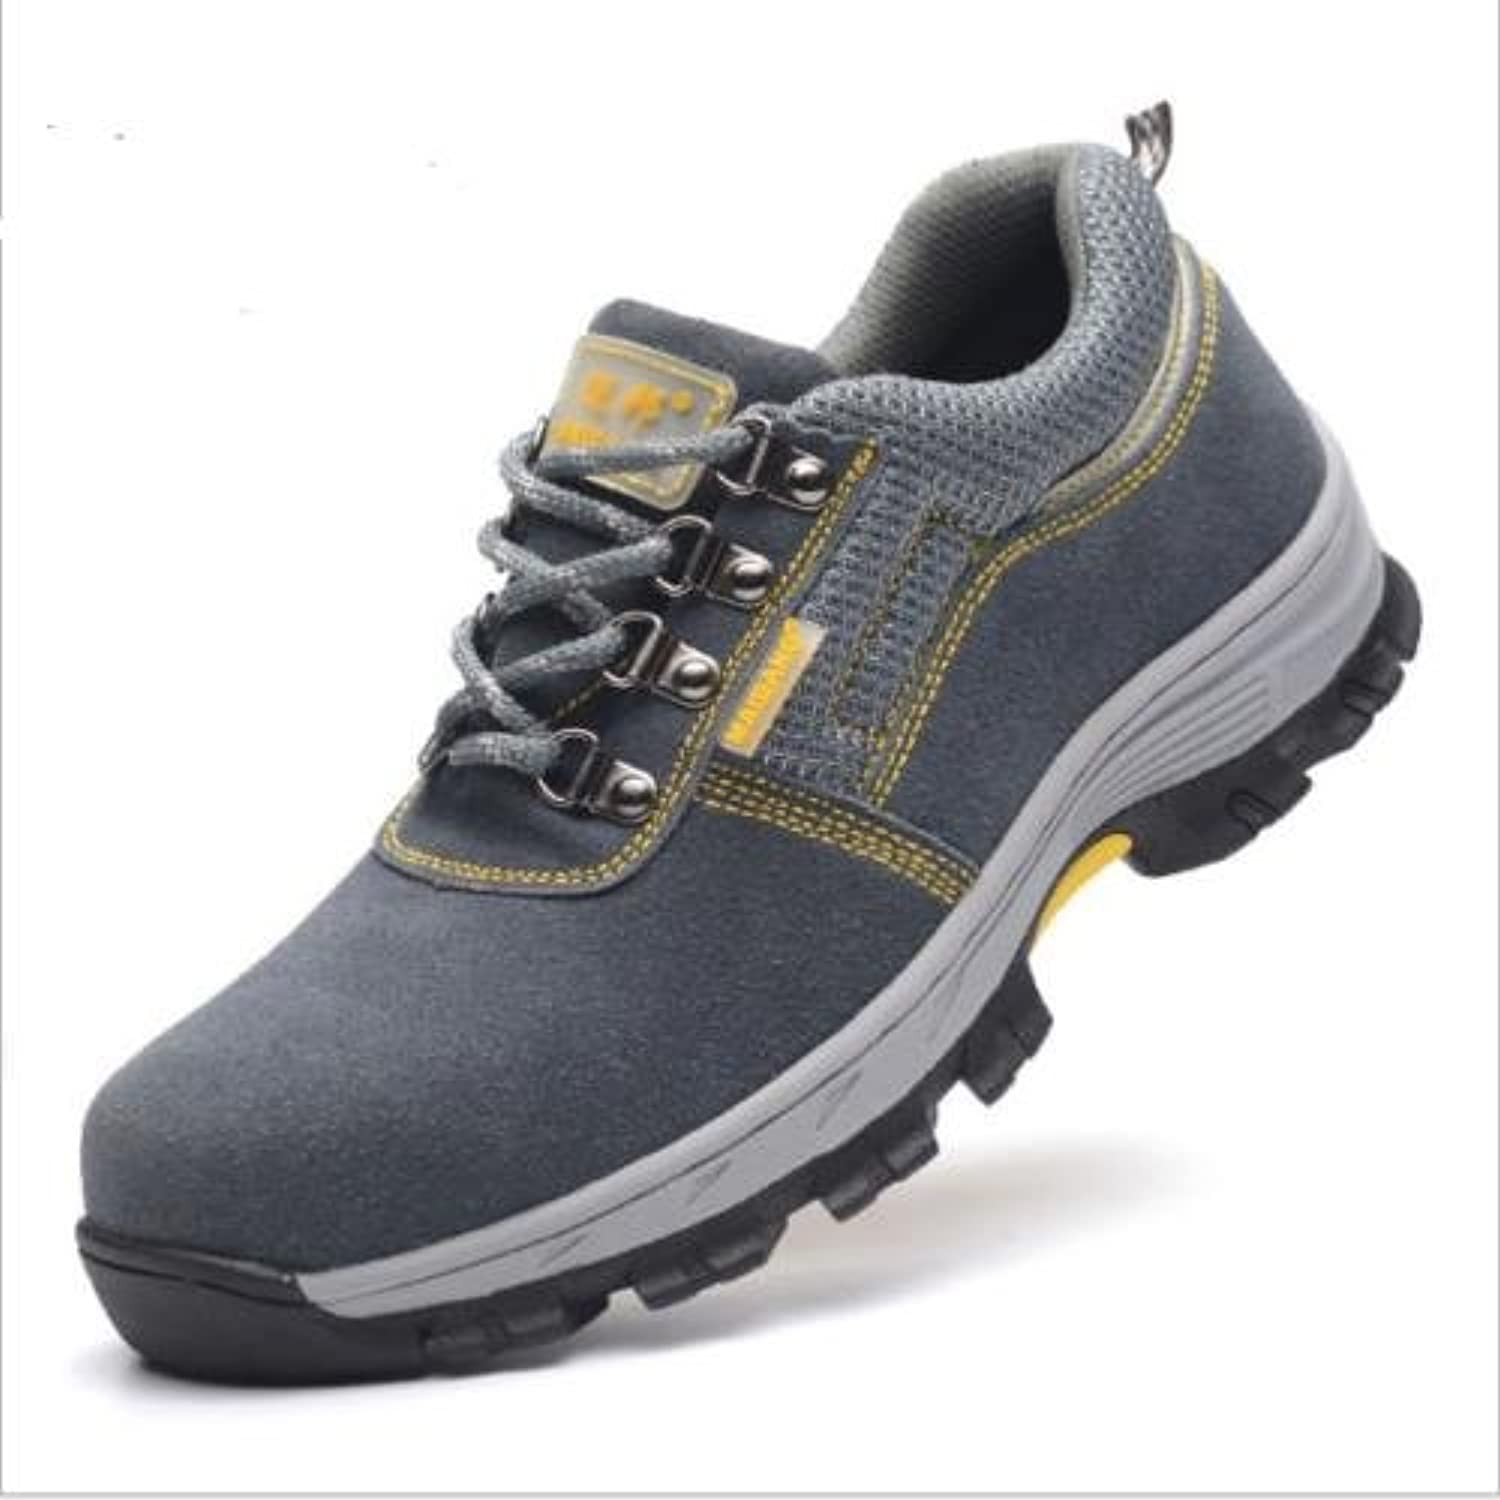 Otado Outdoors Clothing & shoes - Outdoor Mens Safety shoes Summer Breathable Steel Toe Work Boots Hiking Climbing - (Size(US)  7, color  Grey)